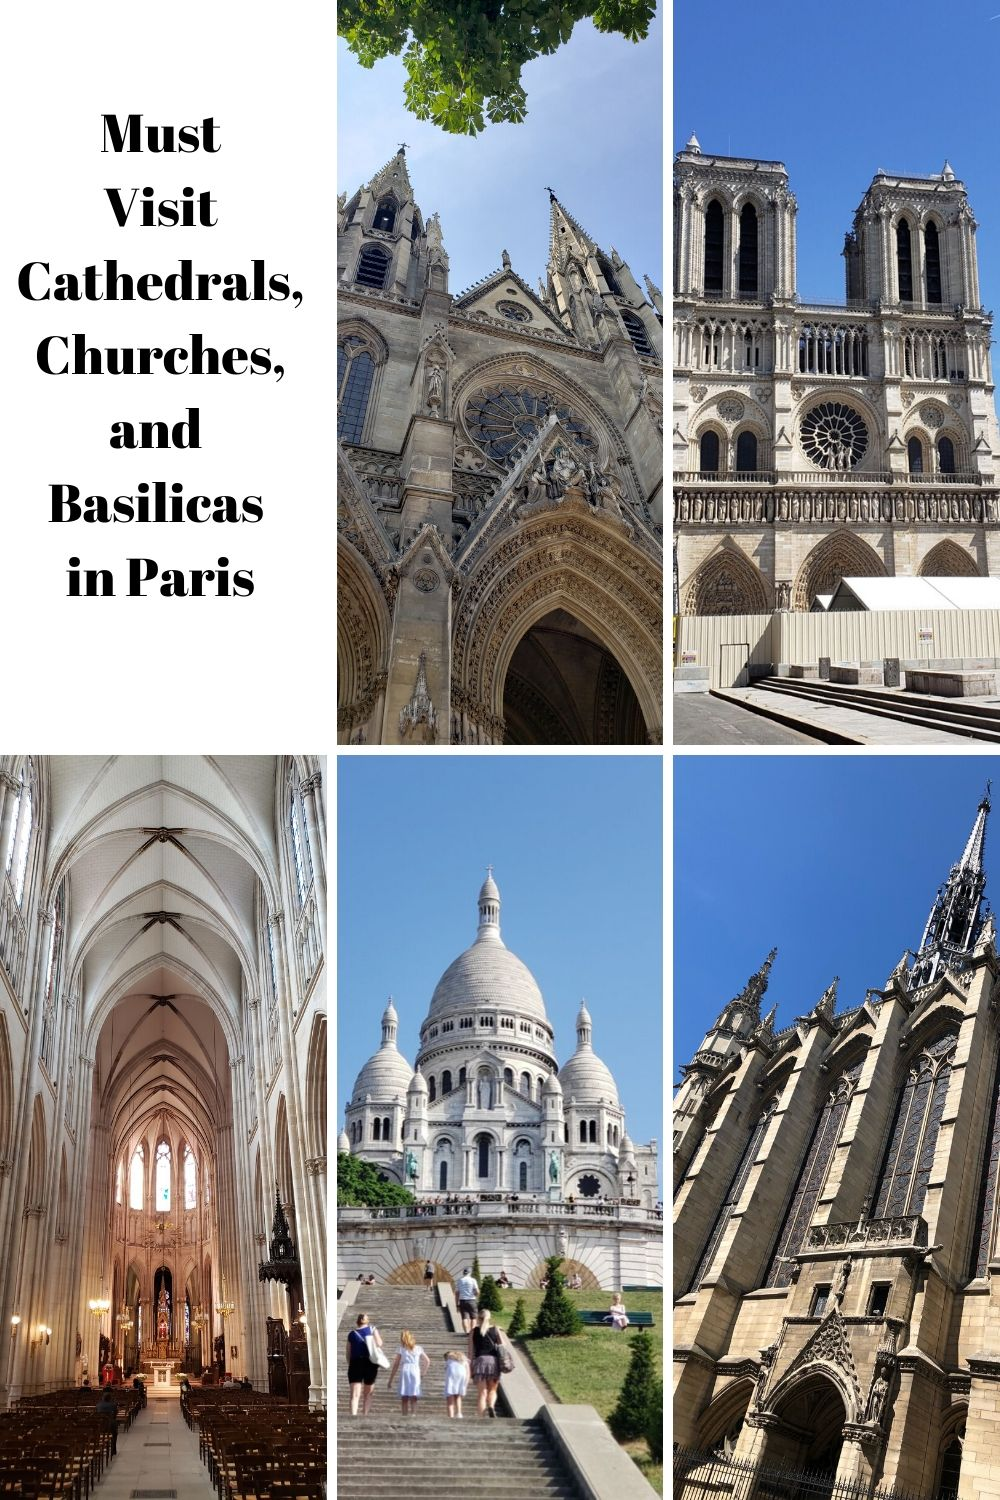 Today, we're sharing with you 5 of the most beautiful and historical must visit Cathedrals, Churches, and Basilicas in Paris. #Paris #paristravel